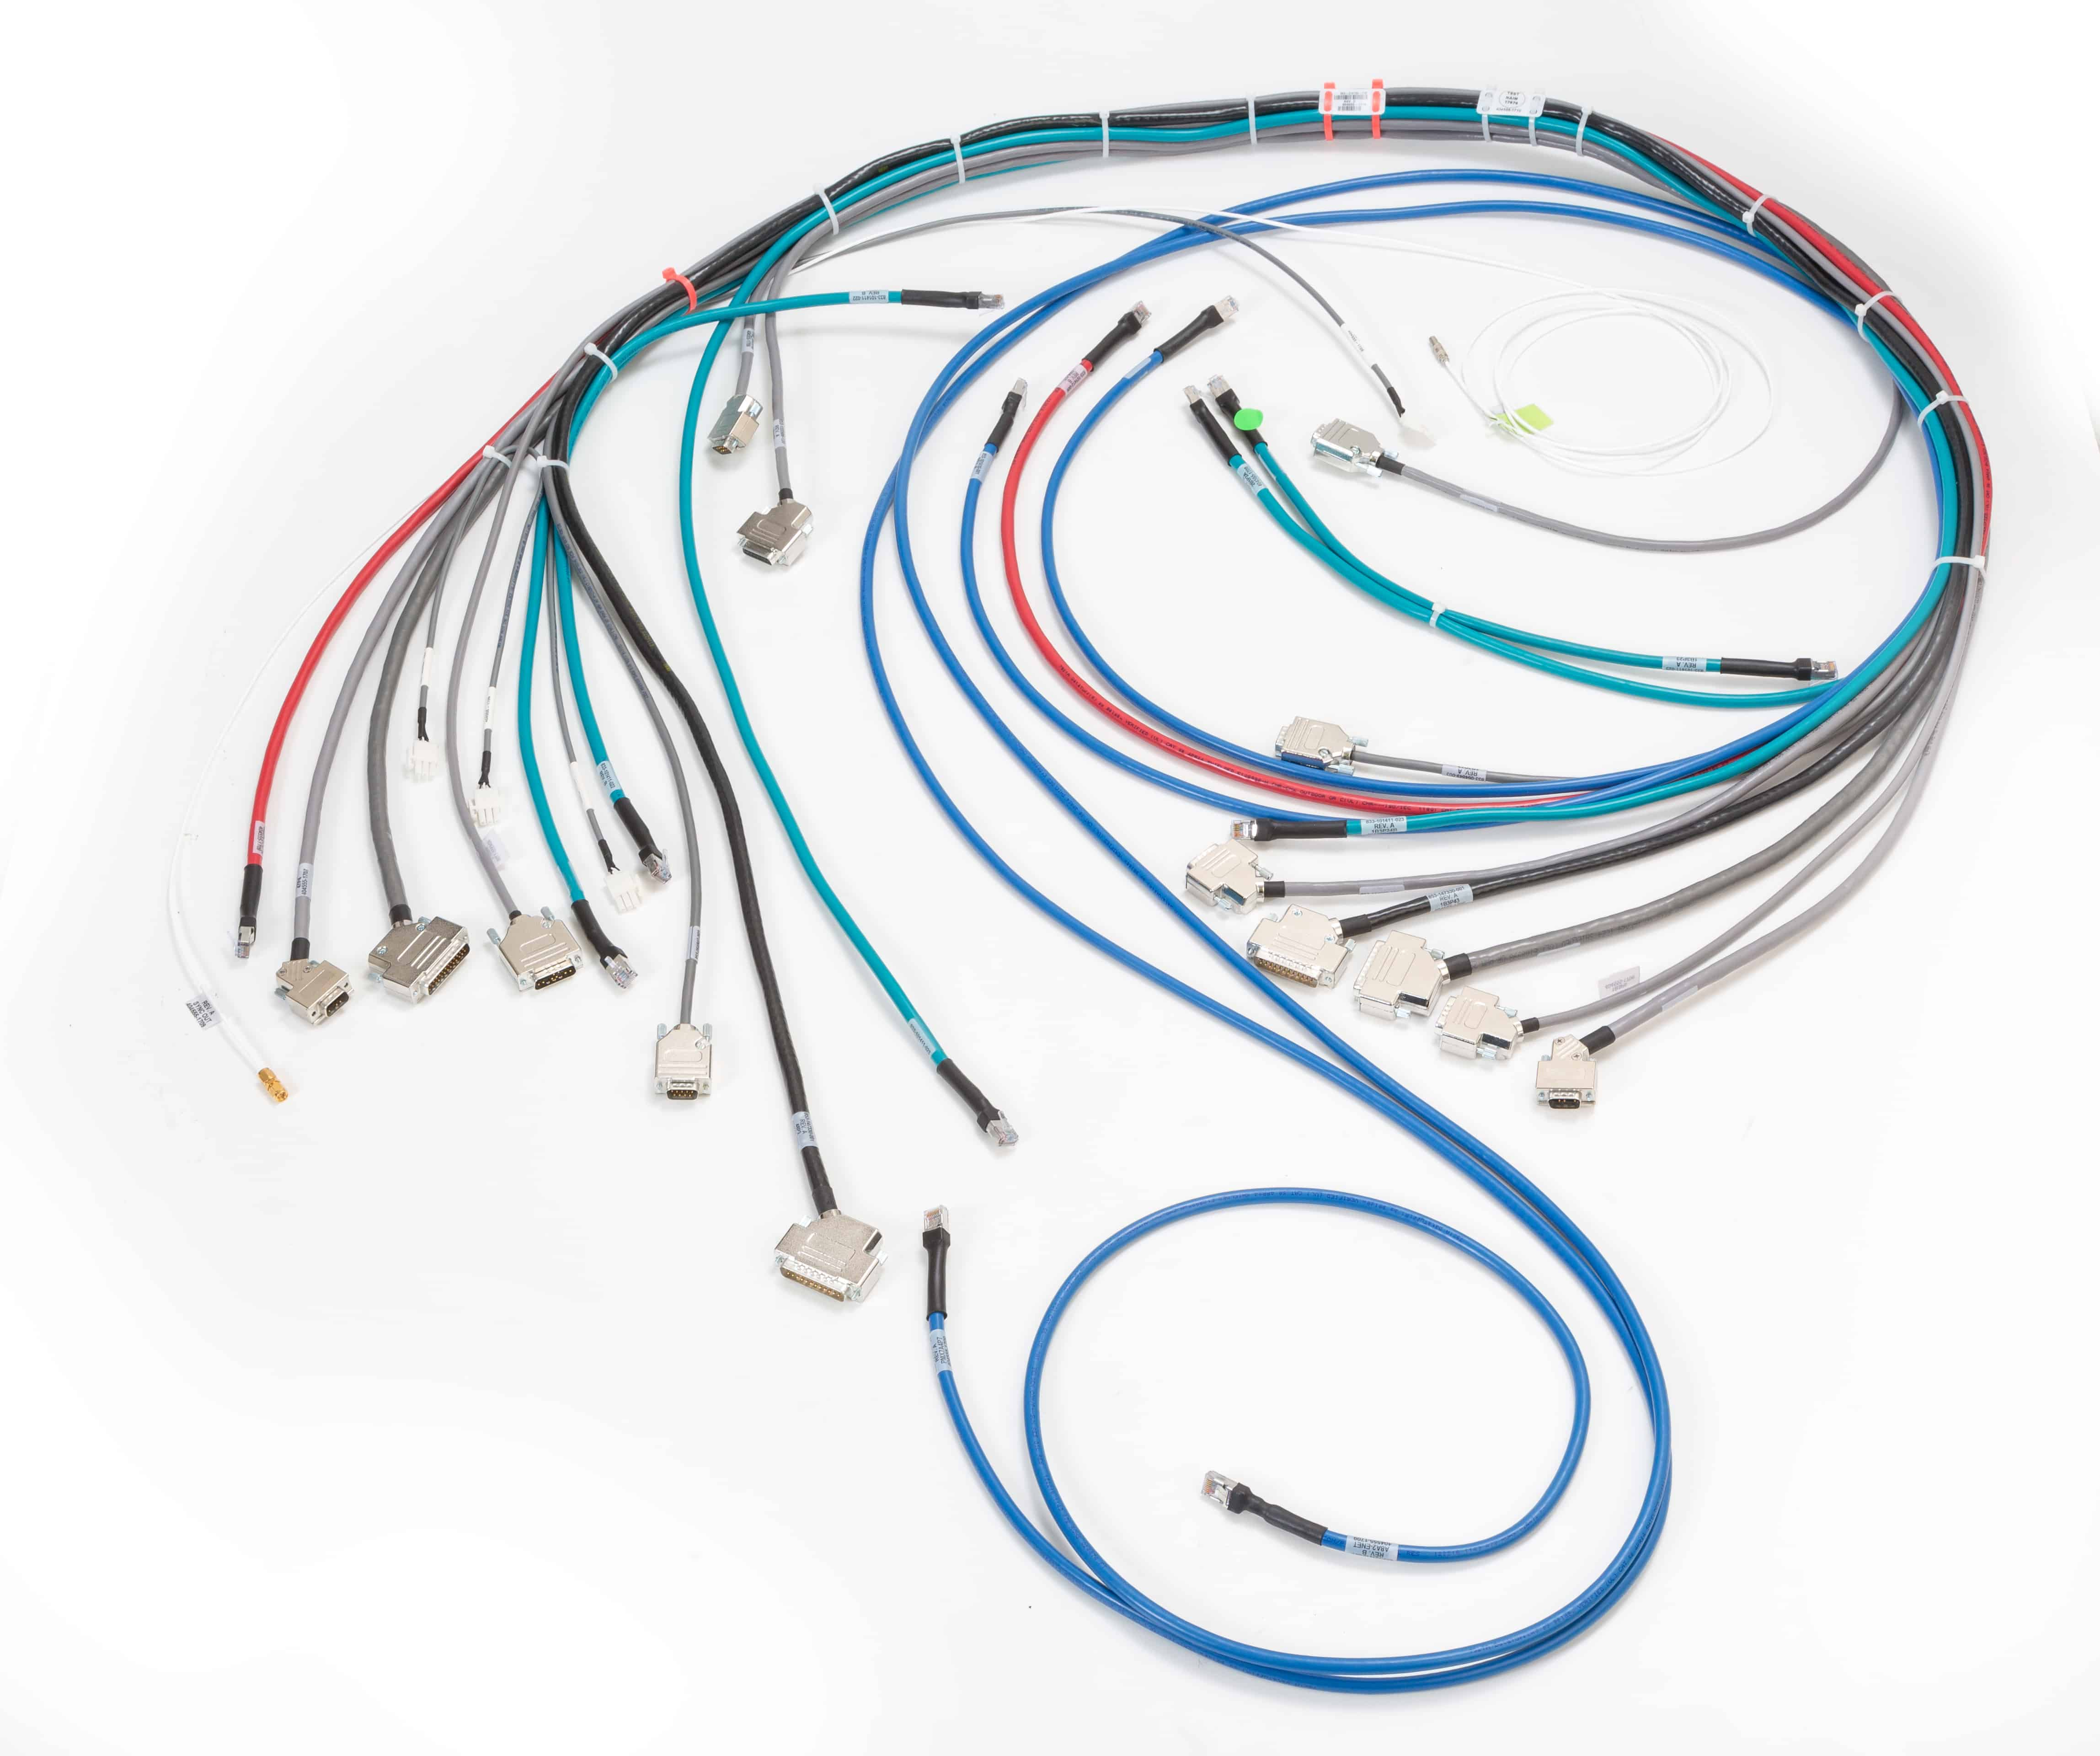 Selecting A Source For Very Complex Cable Harnesses And Assemblies Wire Harness Assembly Process Copper